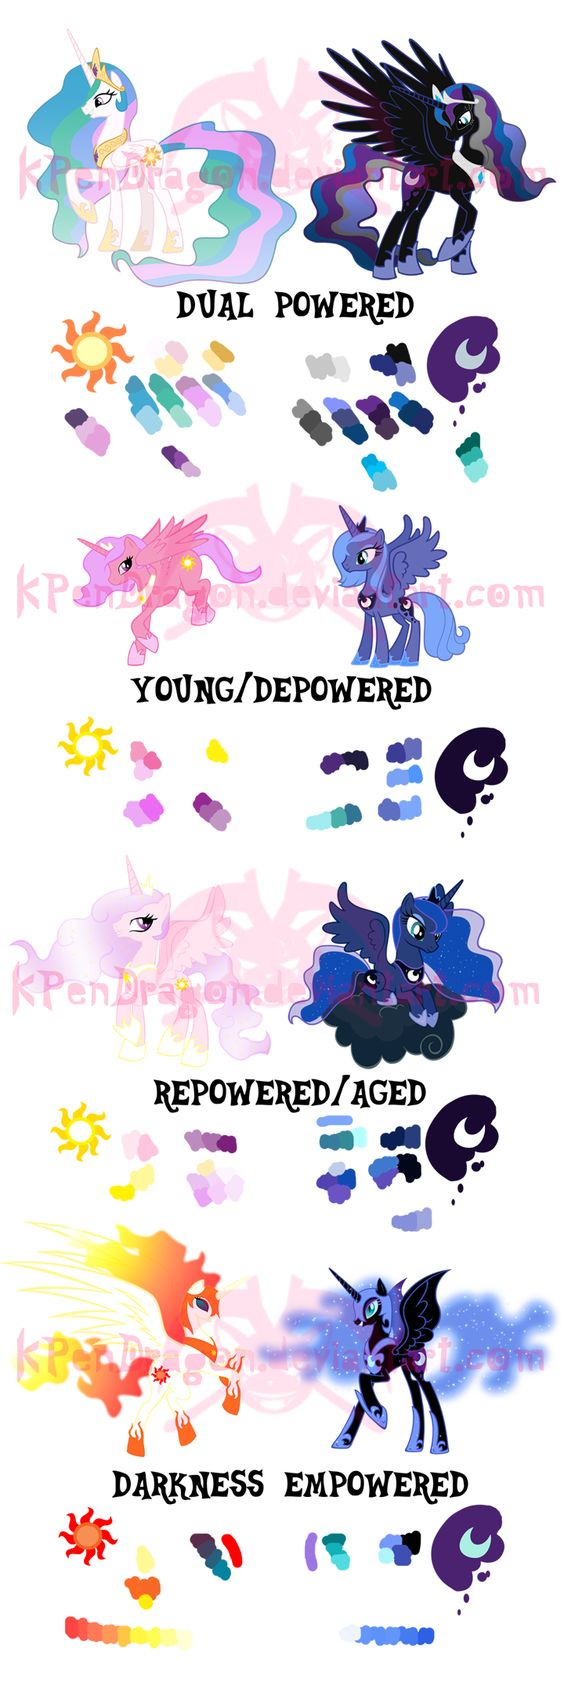 Pin by lana langevin on my little pony licorne cr atures imaginaires dessin anim - My little pony dessin anime ...